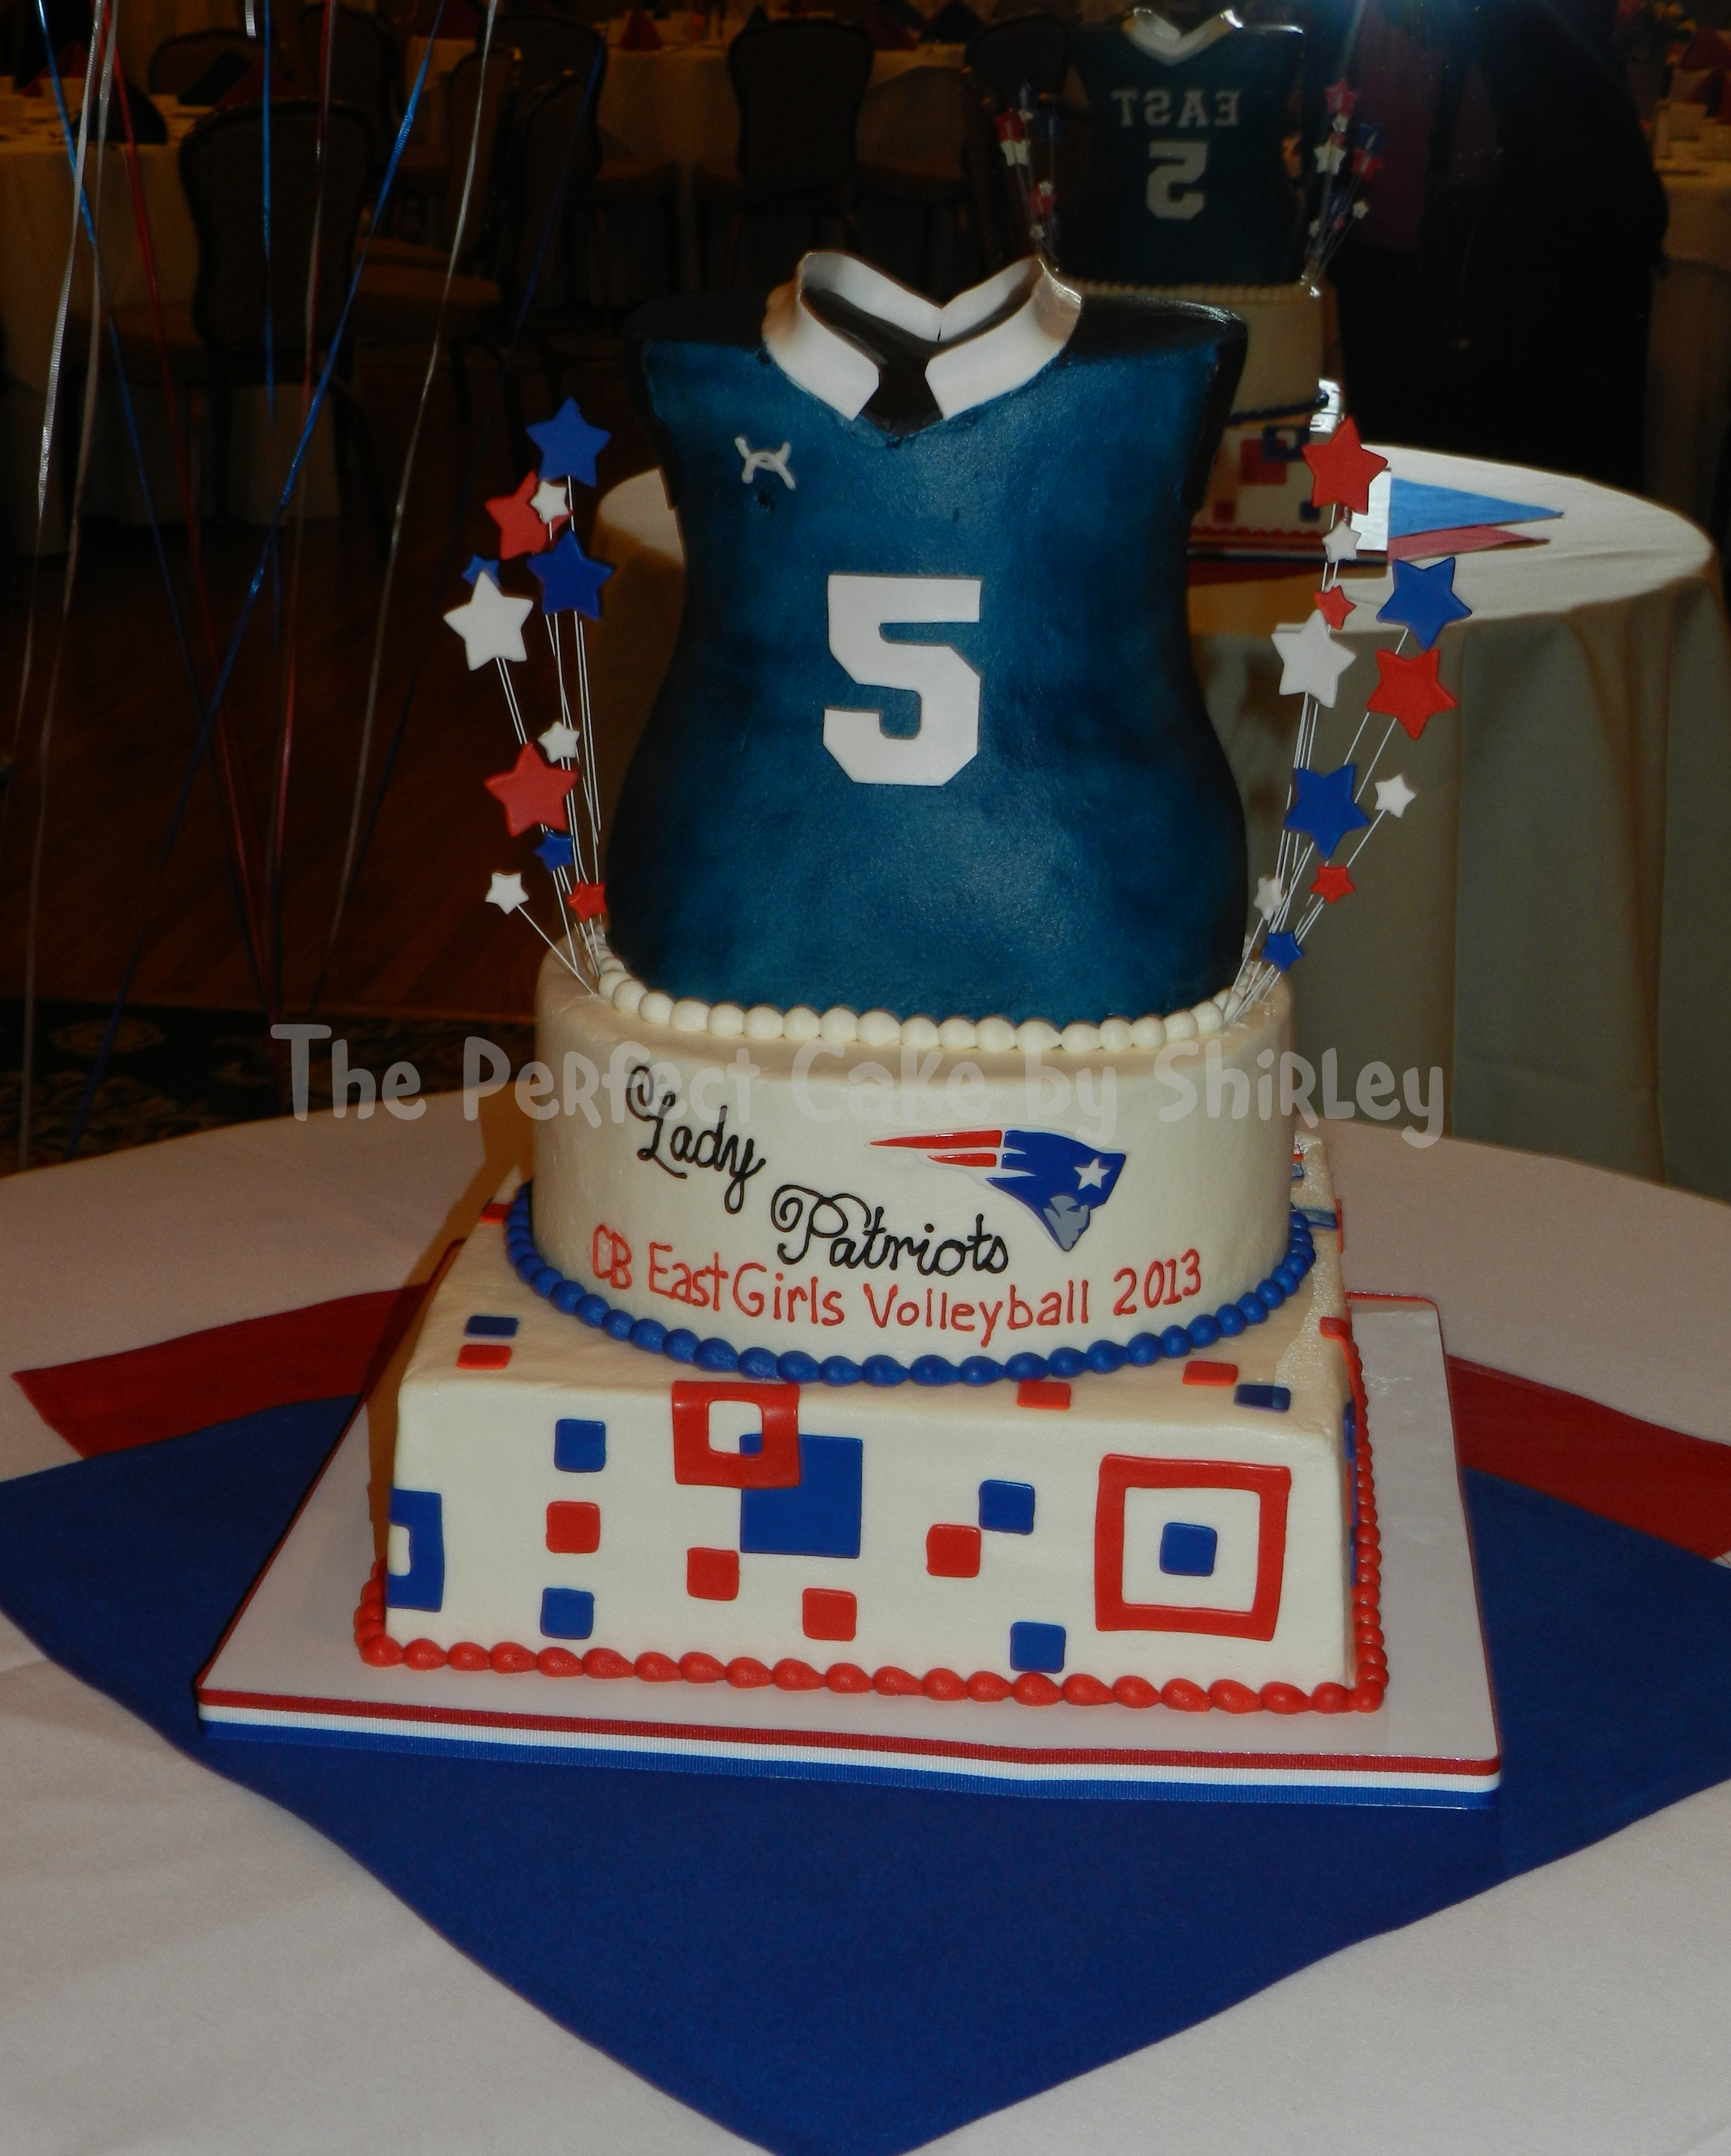 Cb East Girls Volleyball Banquet Cake 3 D Jersey On Top Of Tiered Cake All Cake Iced In Buttercream Jersey Is Airbrushed